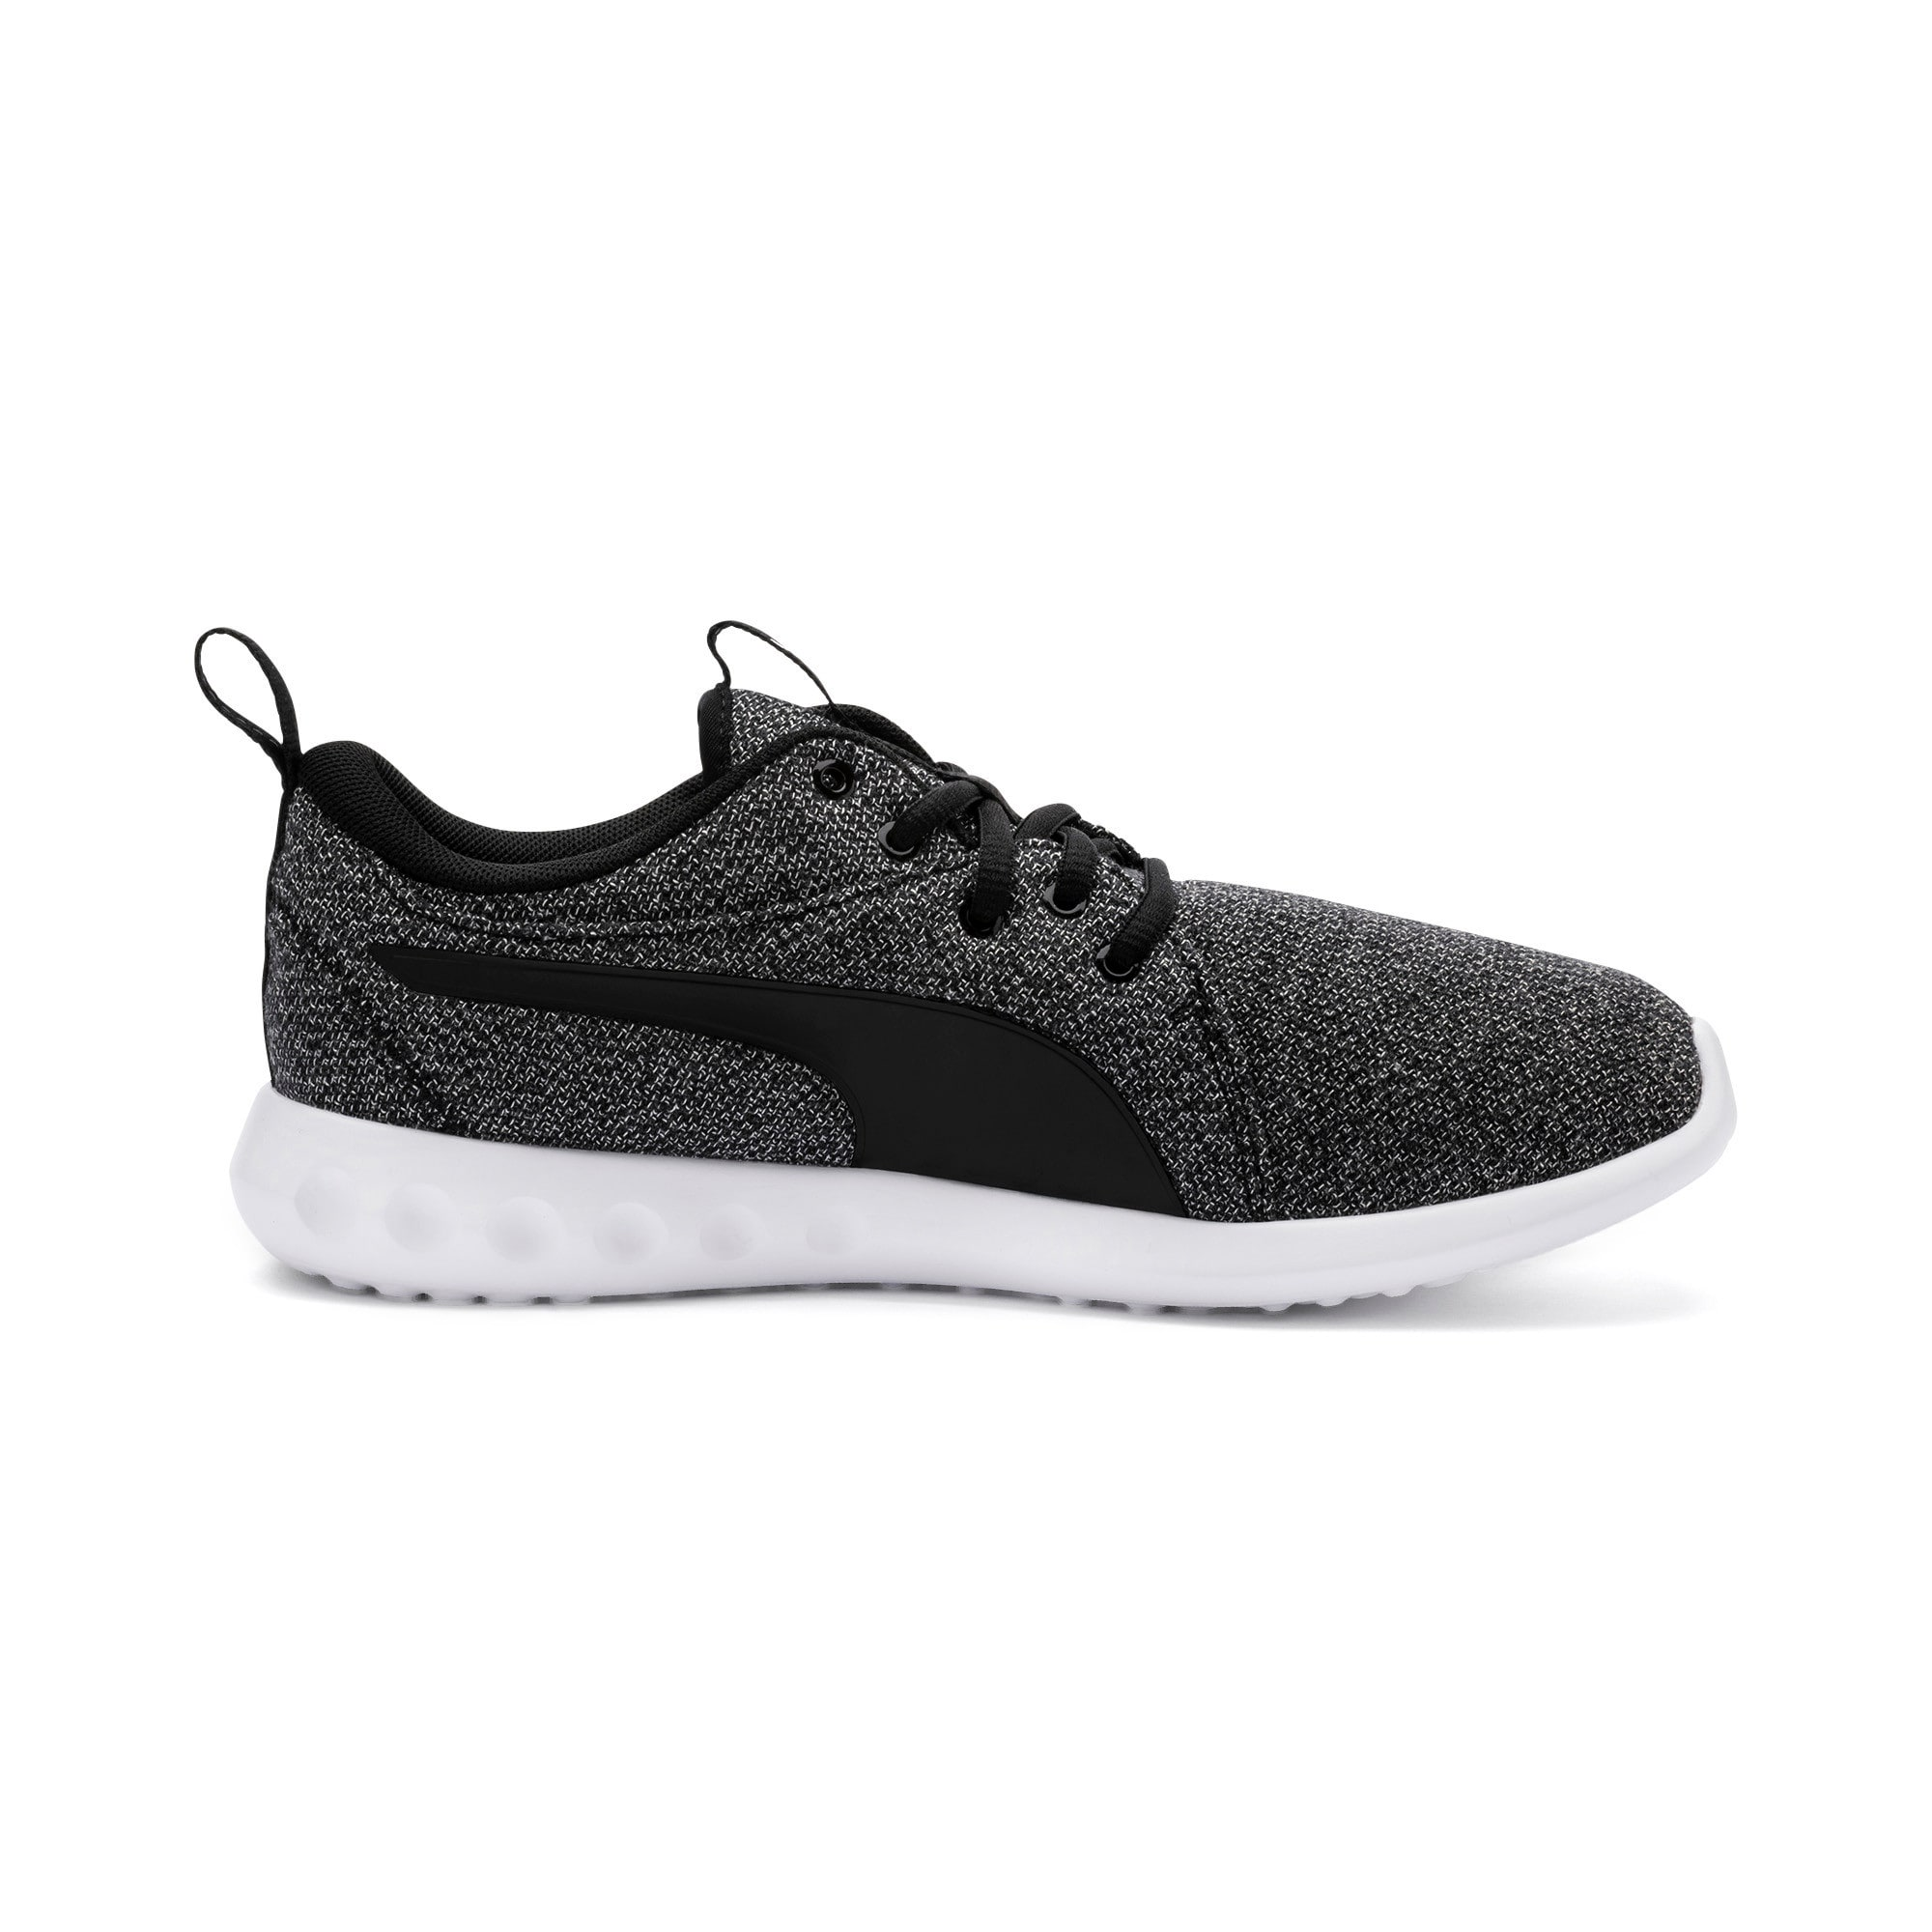 Thumbnail 5 of Carson 2 Knit Women's Trainers, Puma Black-Puma White, medium